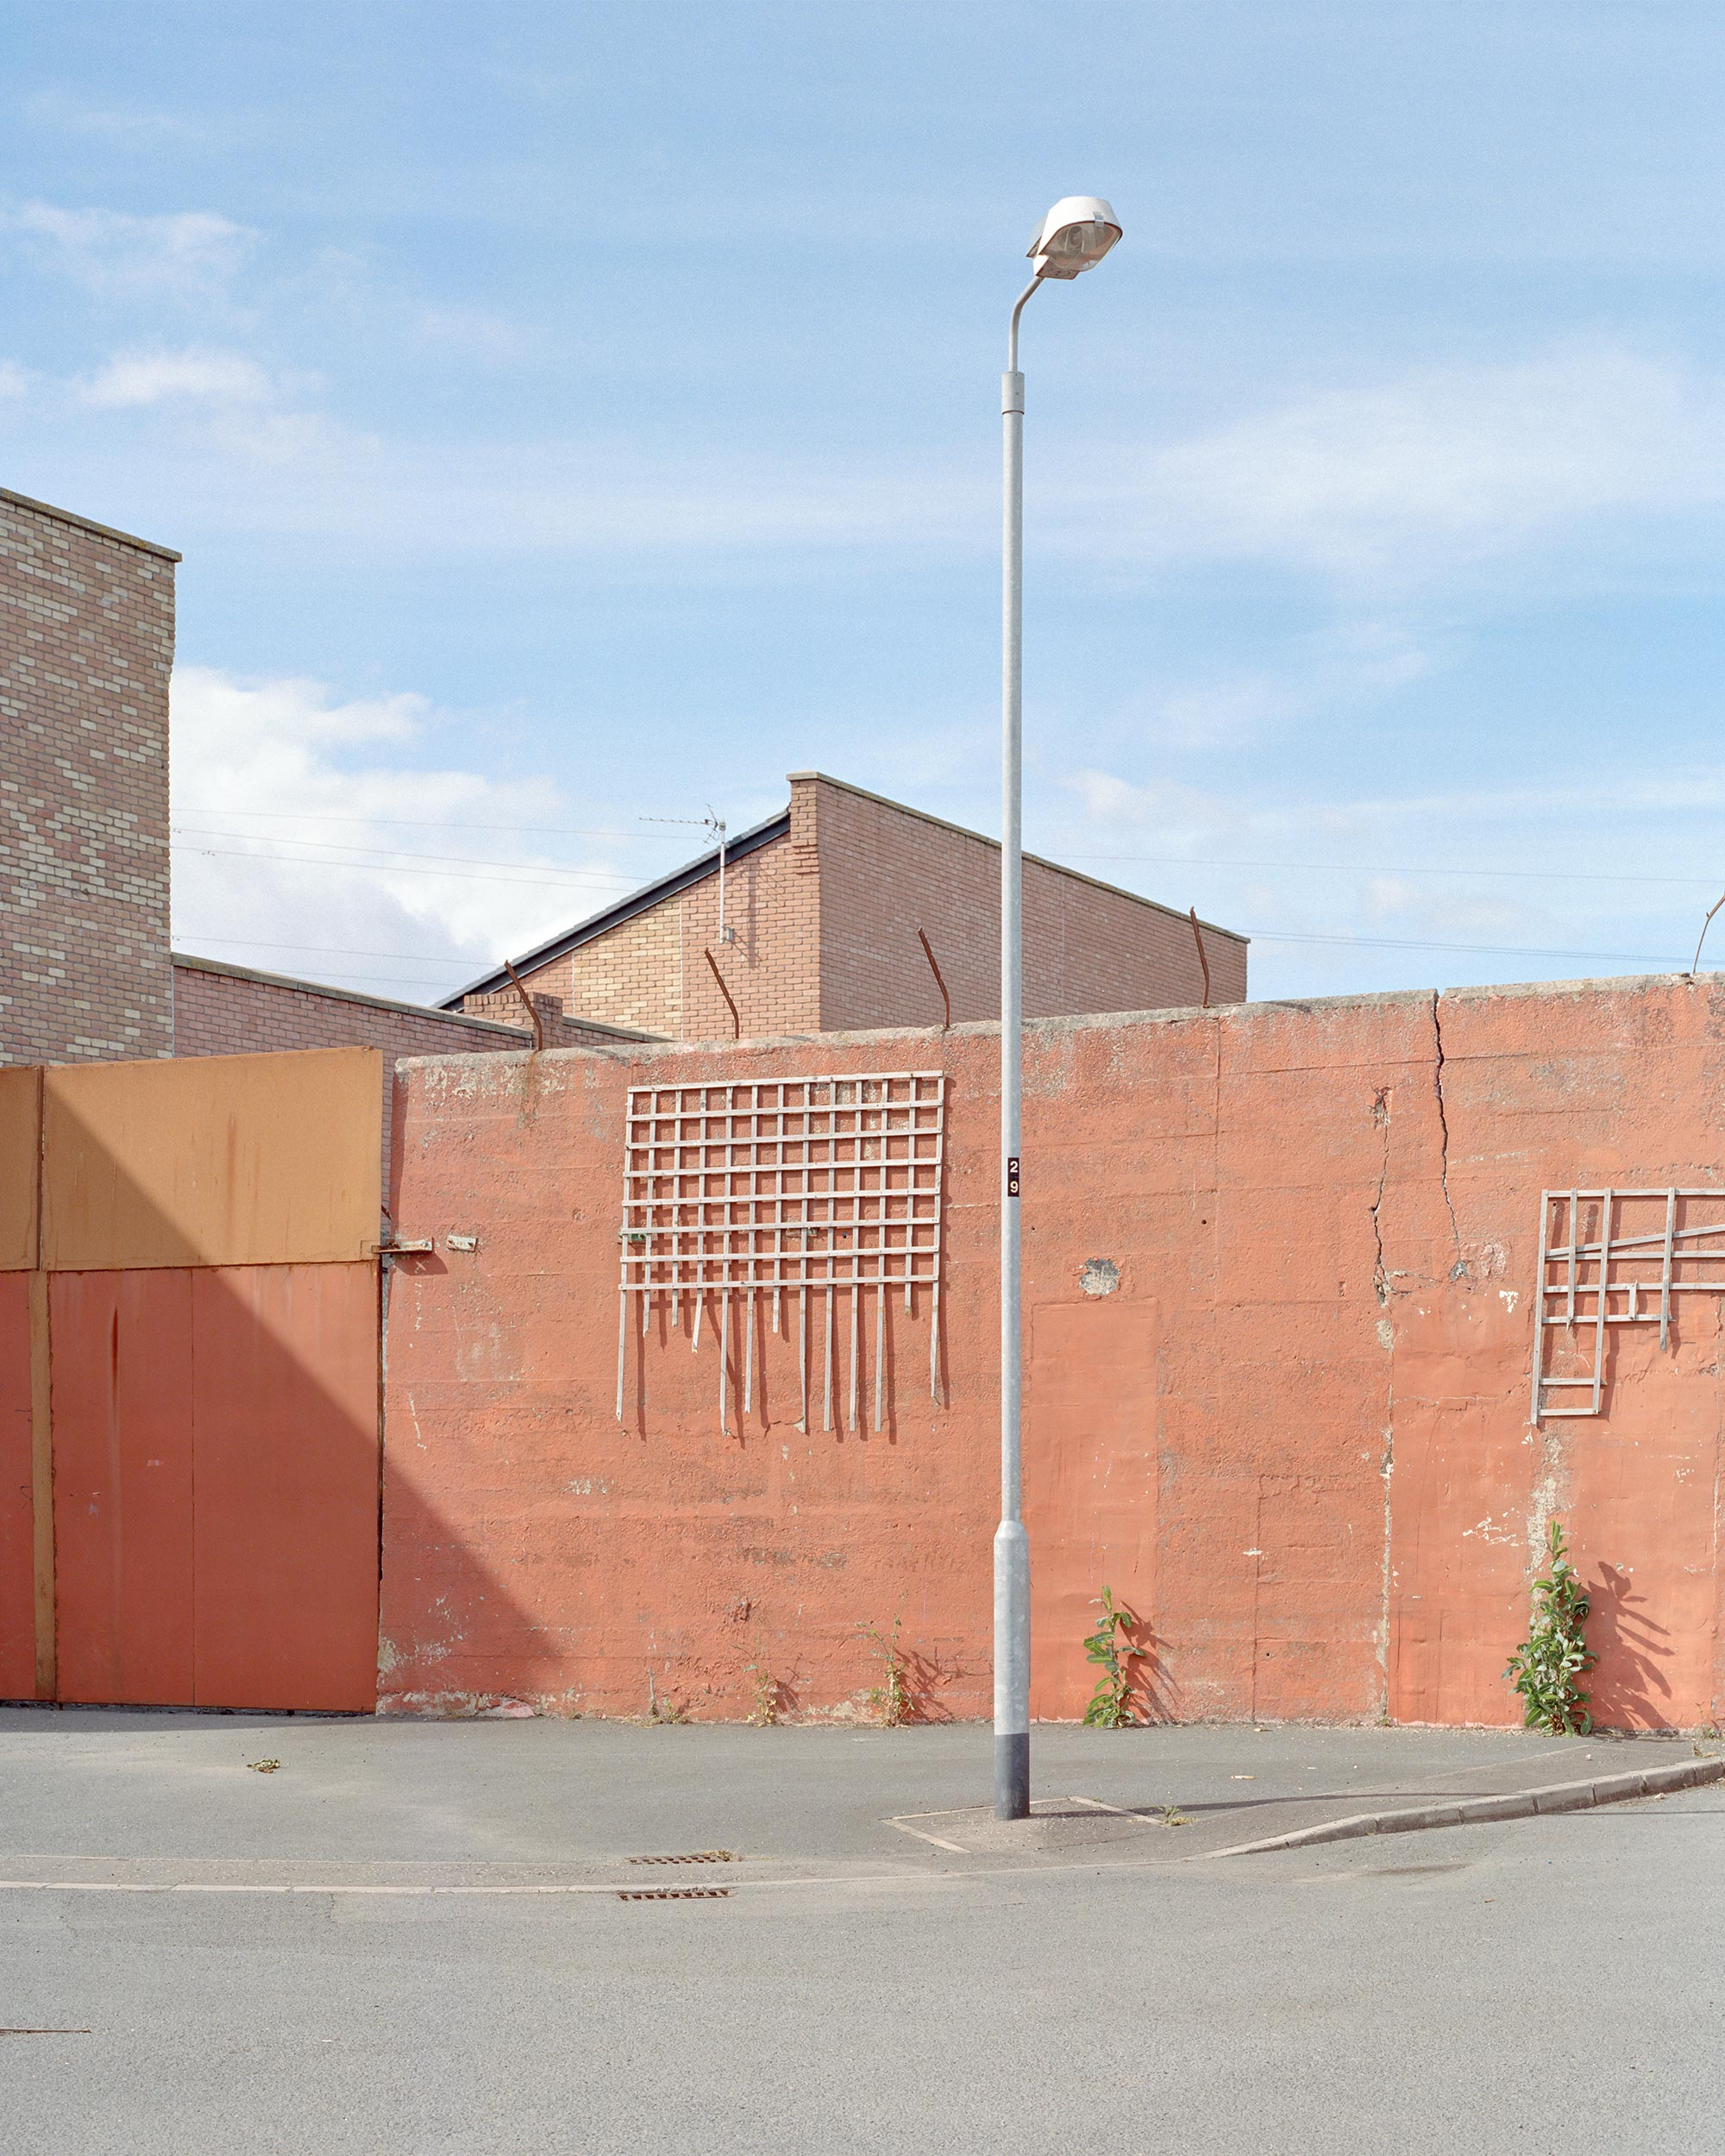 photograph of urban landscape from series 99 Peace Walls